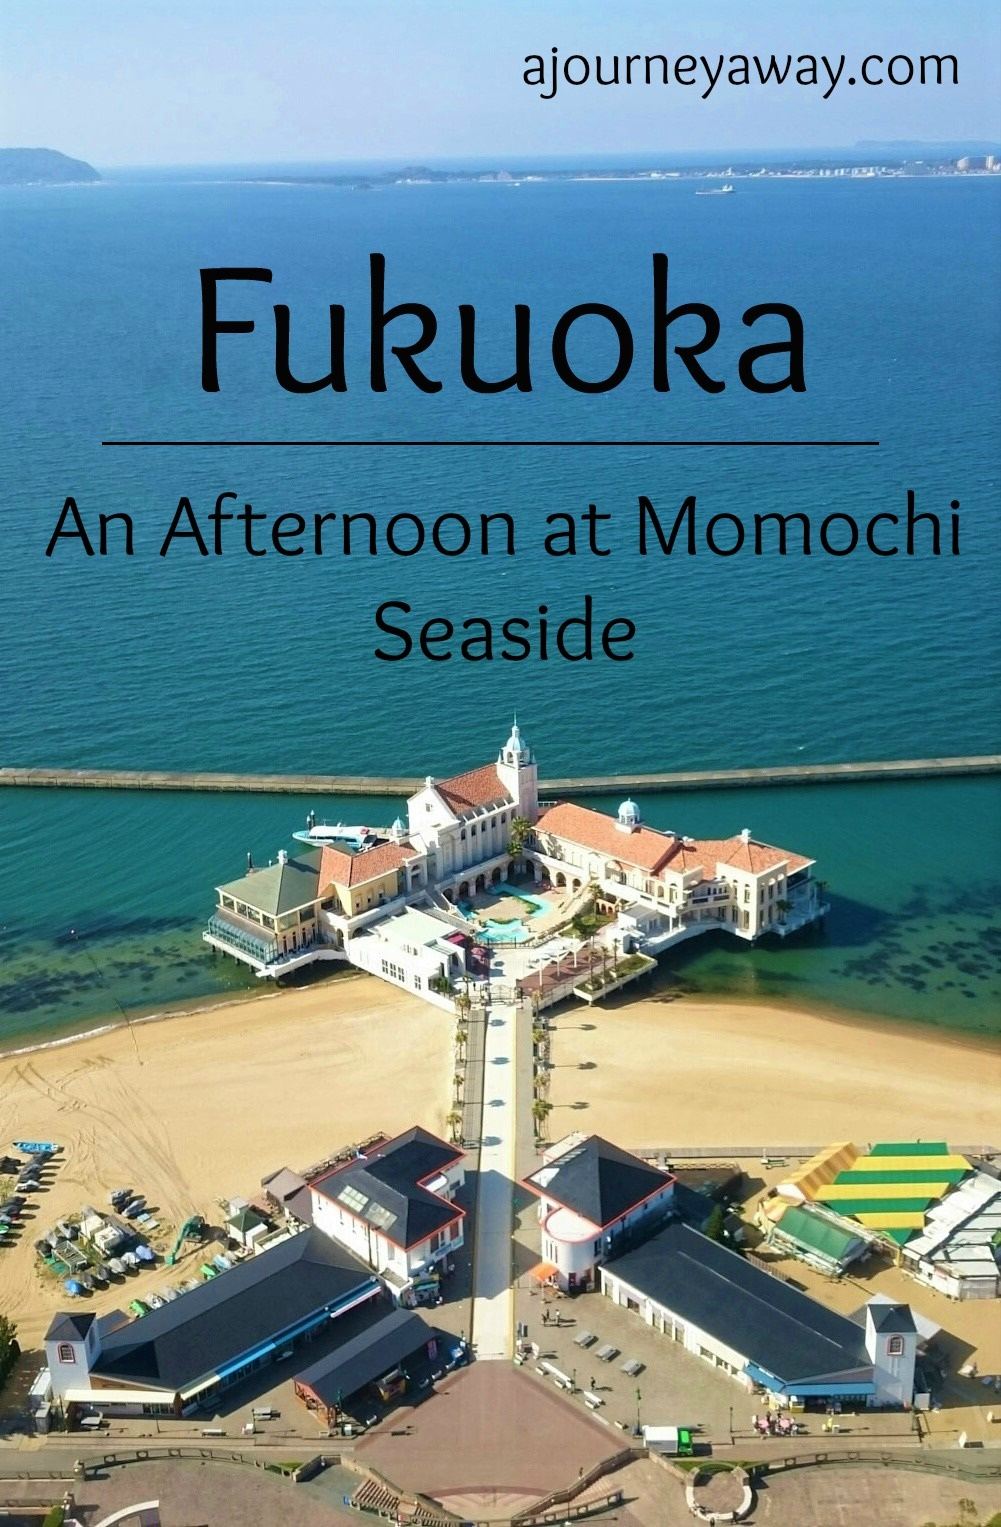 An afternoon at Momochi seaside in Fukuoka, Japan